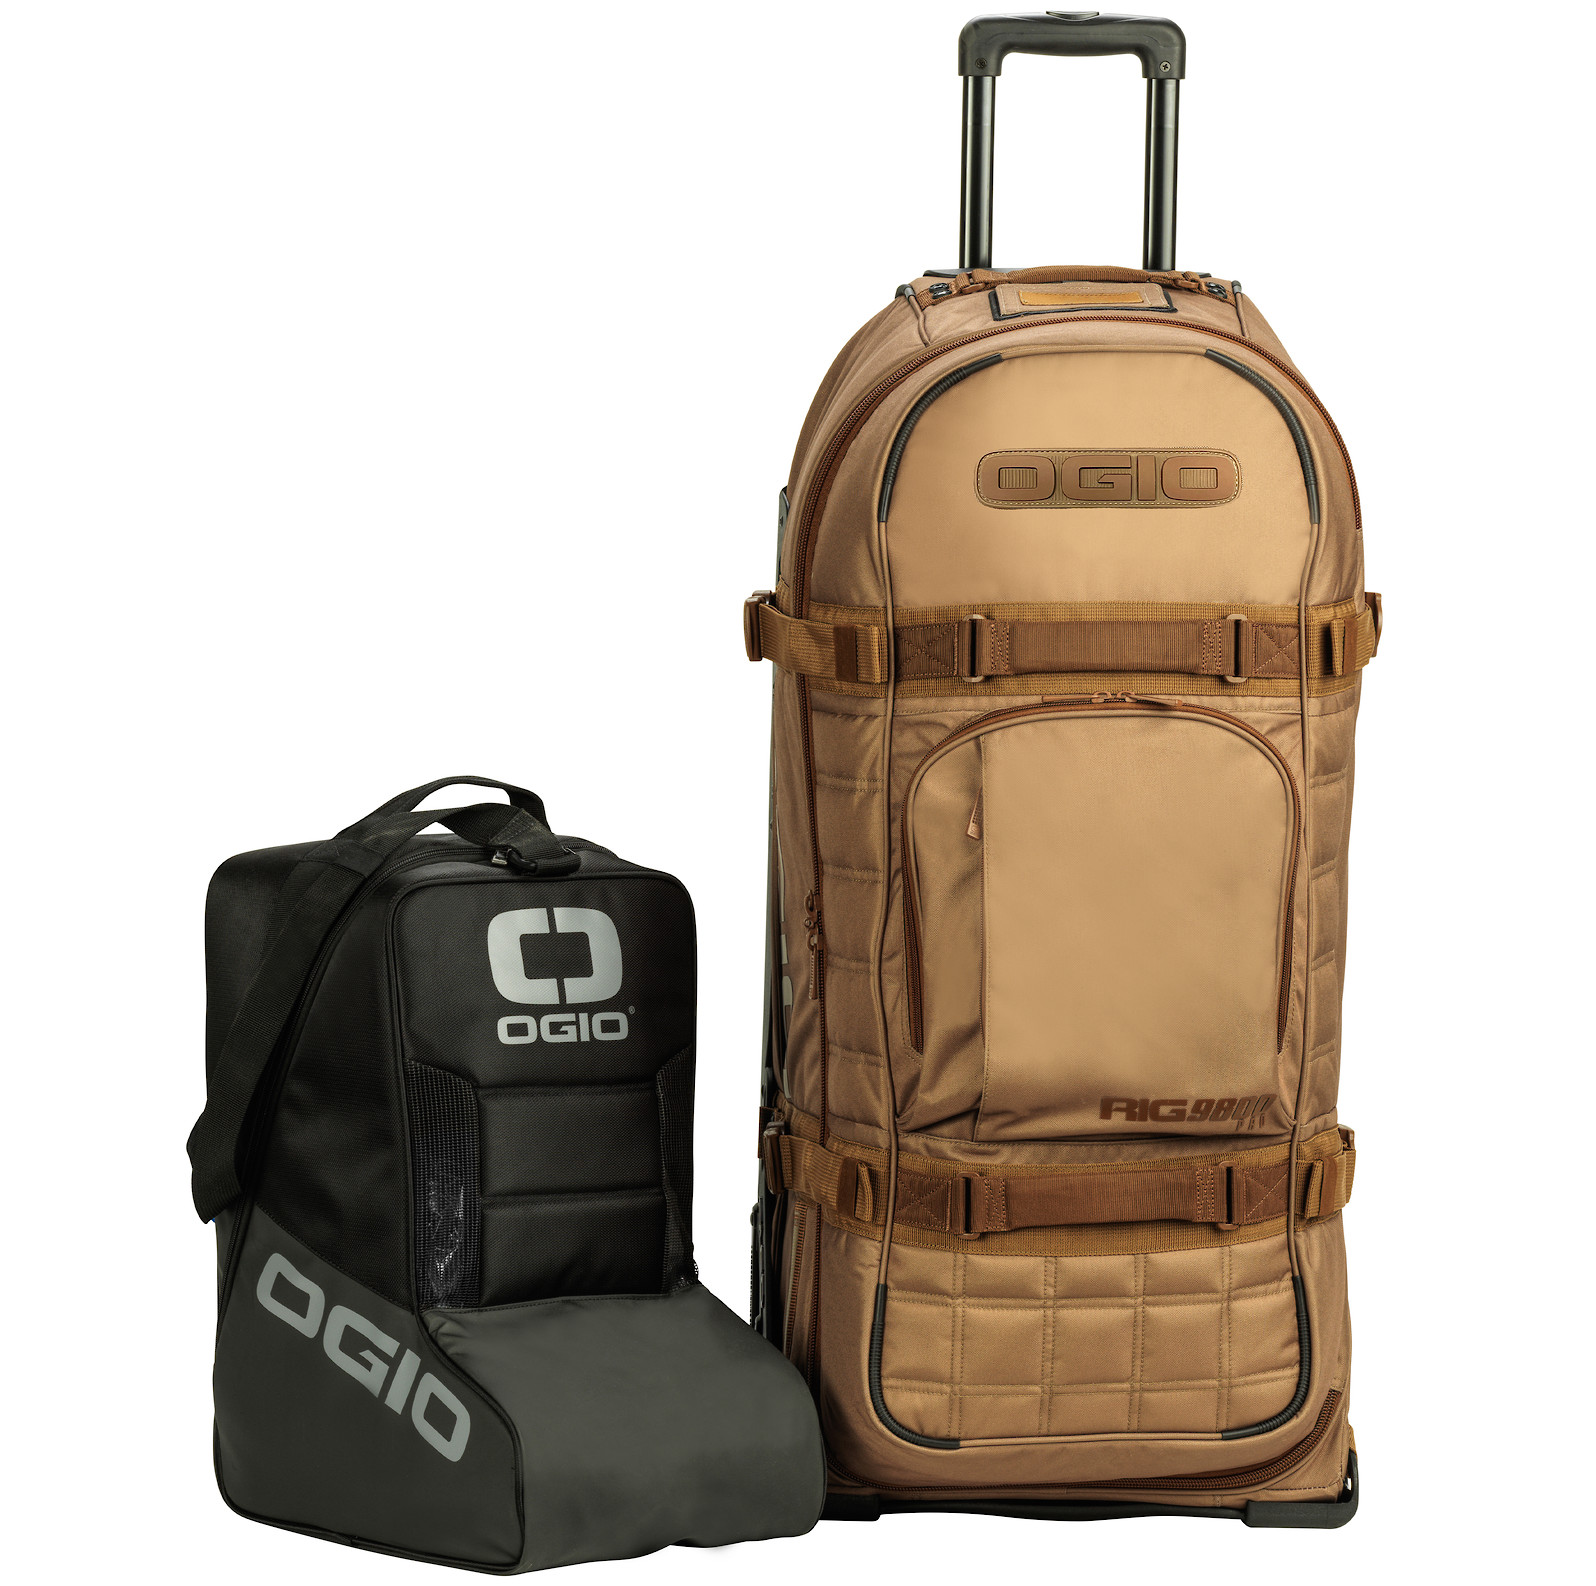 OG_21_GEARBAG_RIGPRO_COYOTE_BOOTBAG_RGB